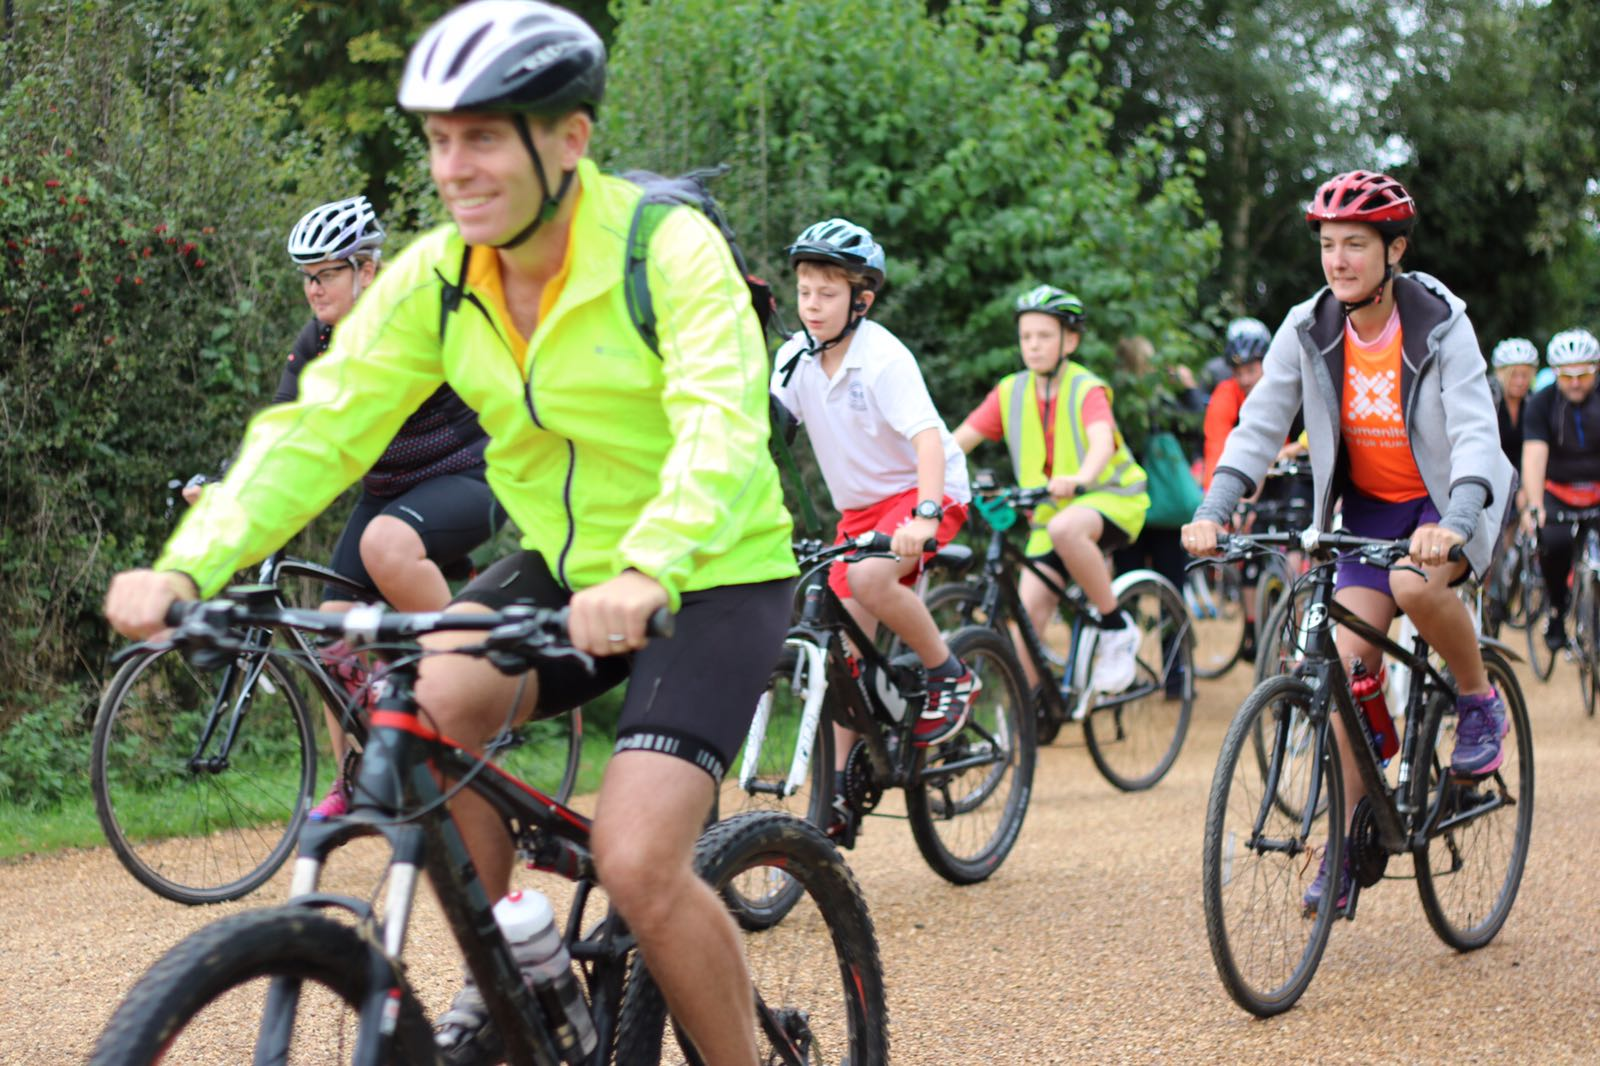 Date: 21st September  Location: The Priory School, Hitchin  Entrance: Adult rider £30 | Child rider £10 (under 16)  Routes: 10, 27 and 75 miles  Suggested min sponsorship: £100